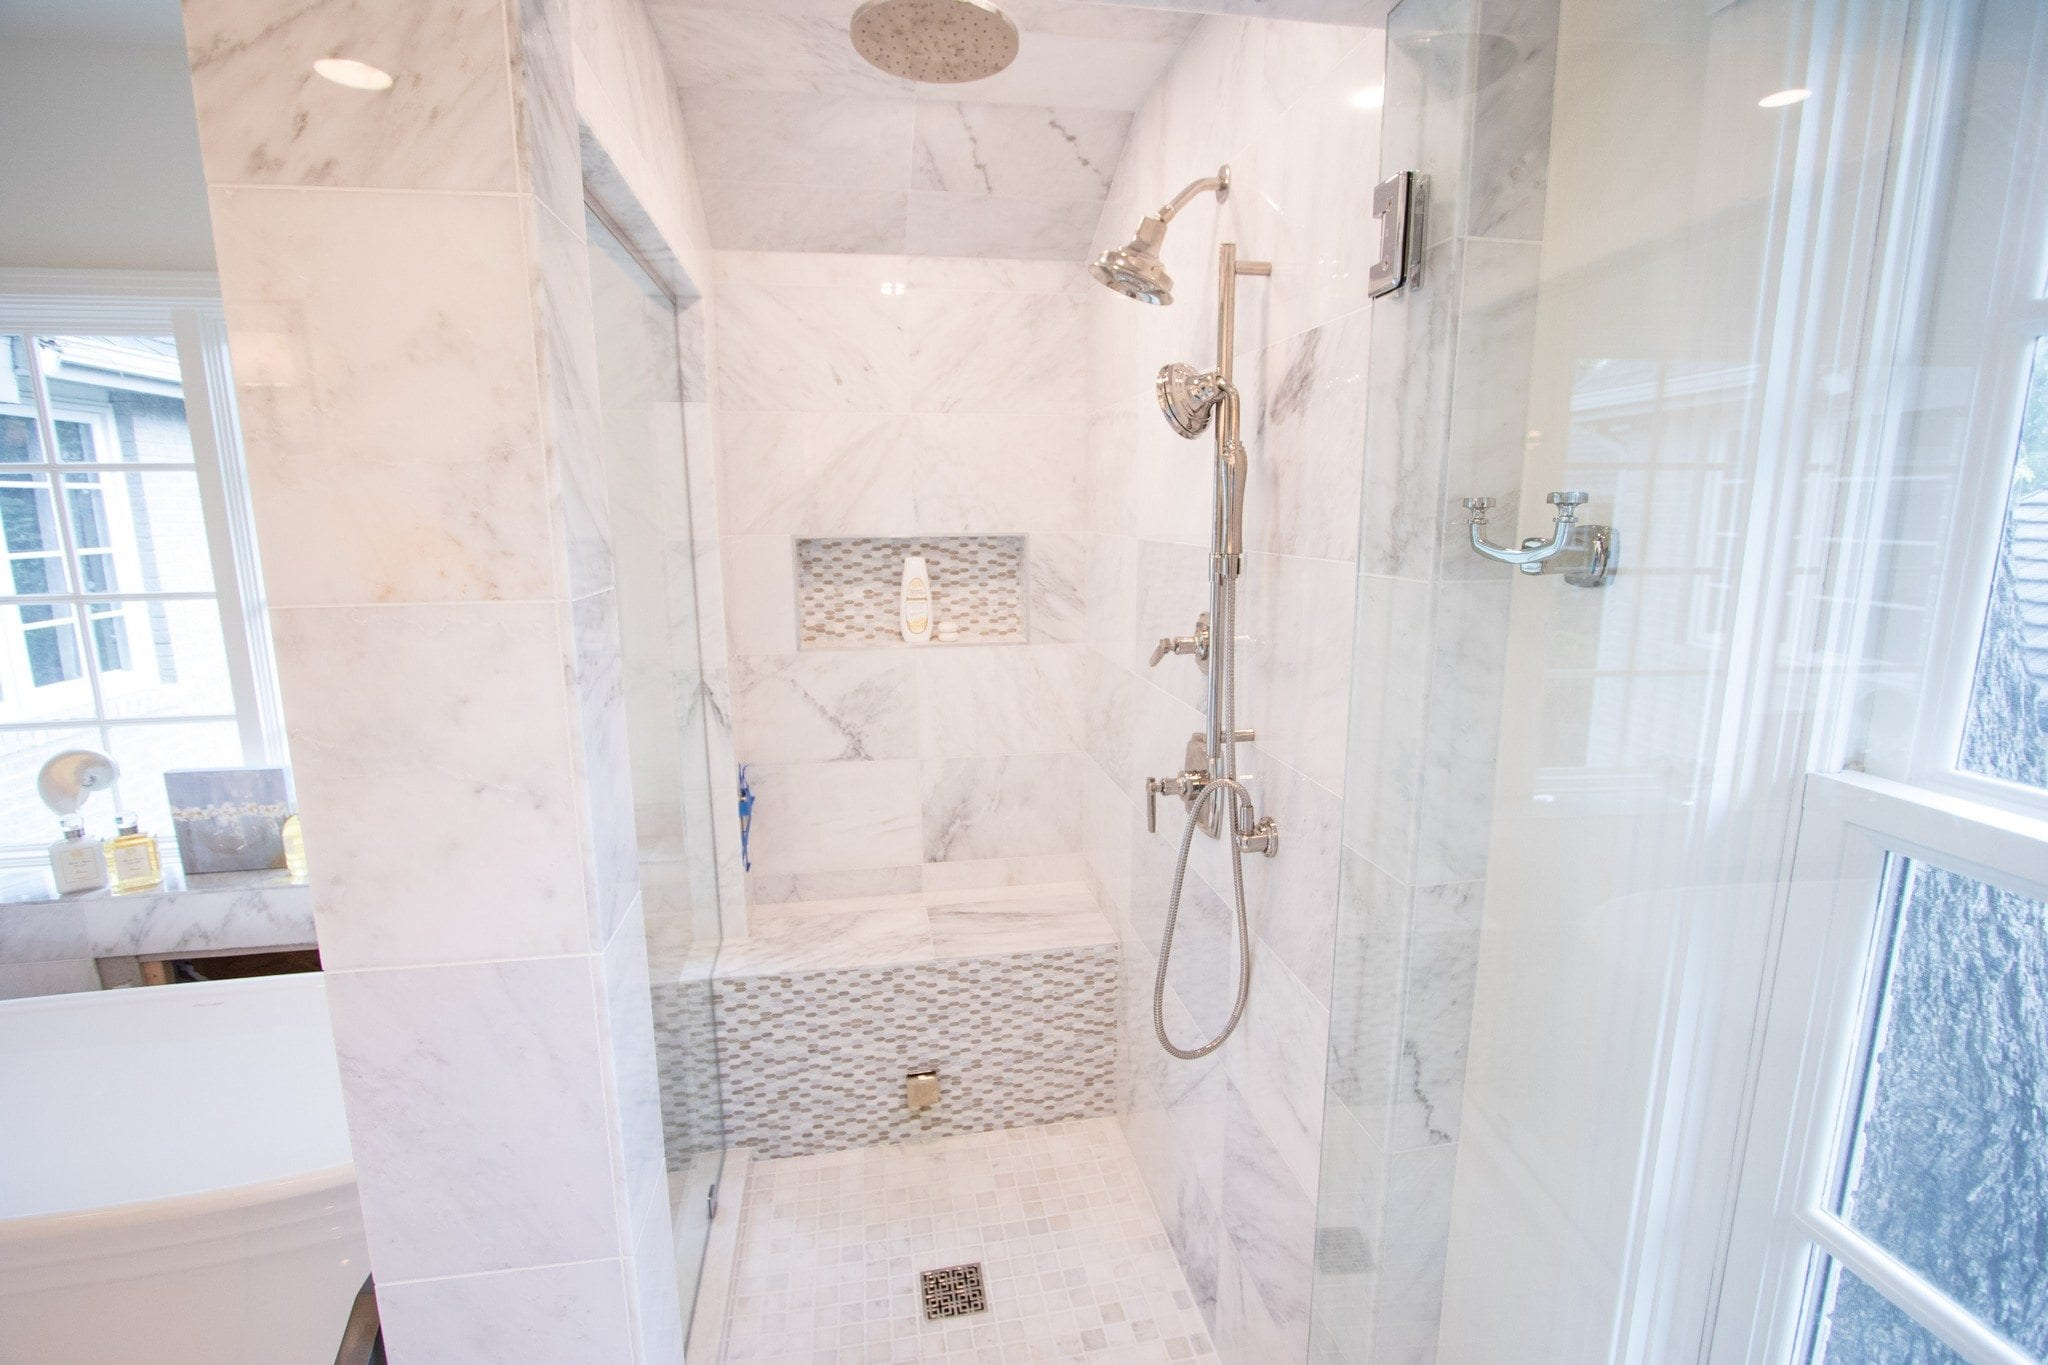 highland park master bathroom remodel april 2017 - renowned renovation